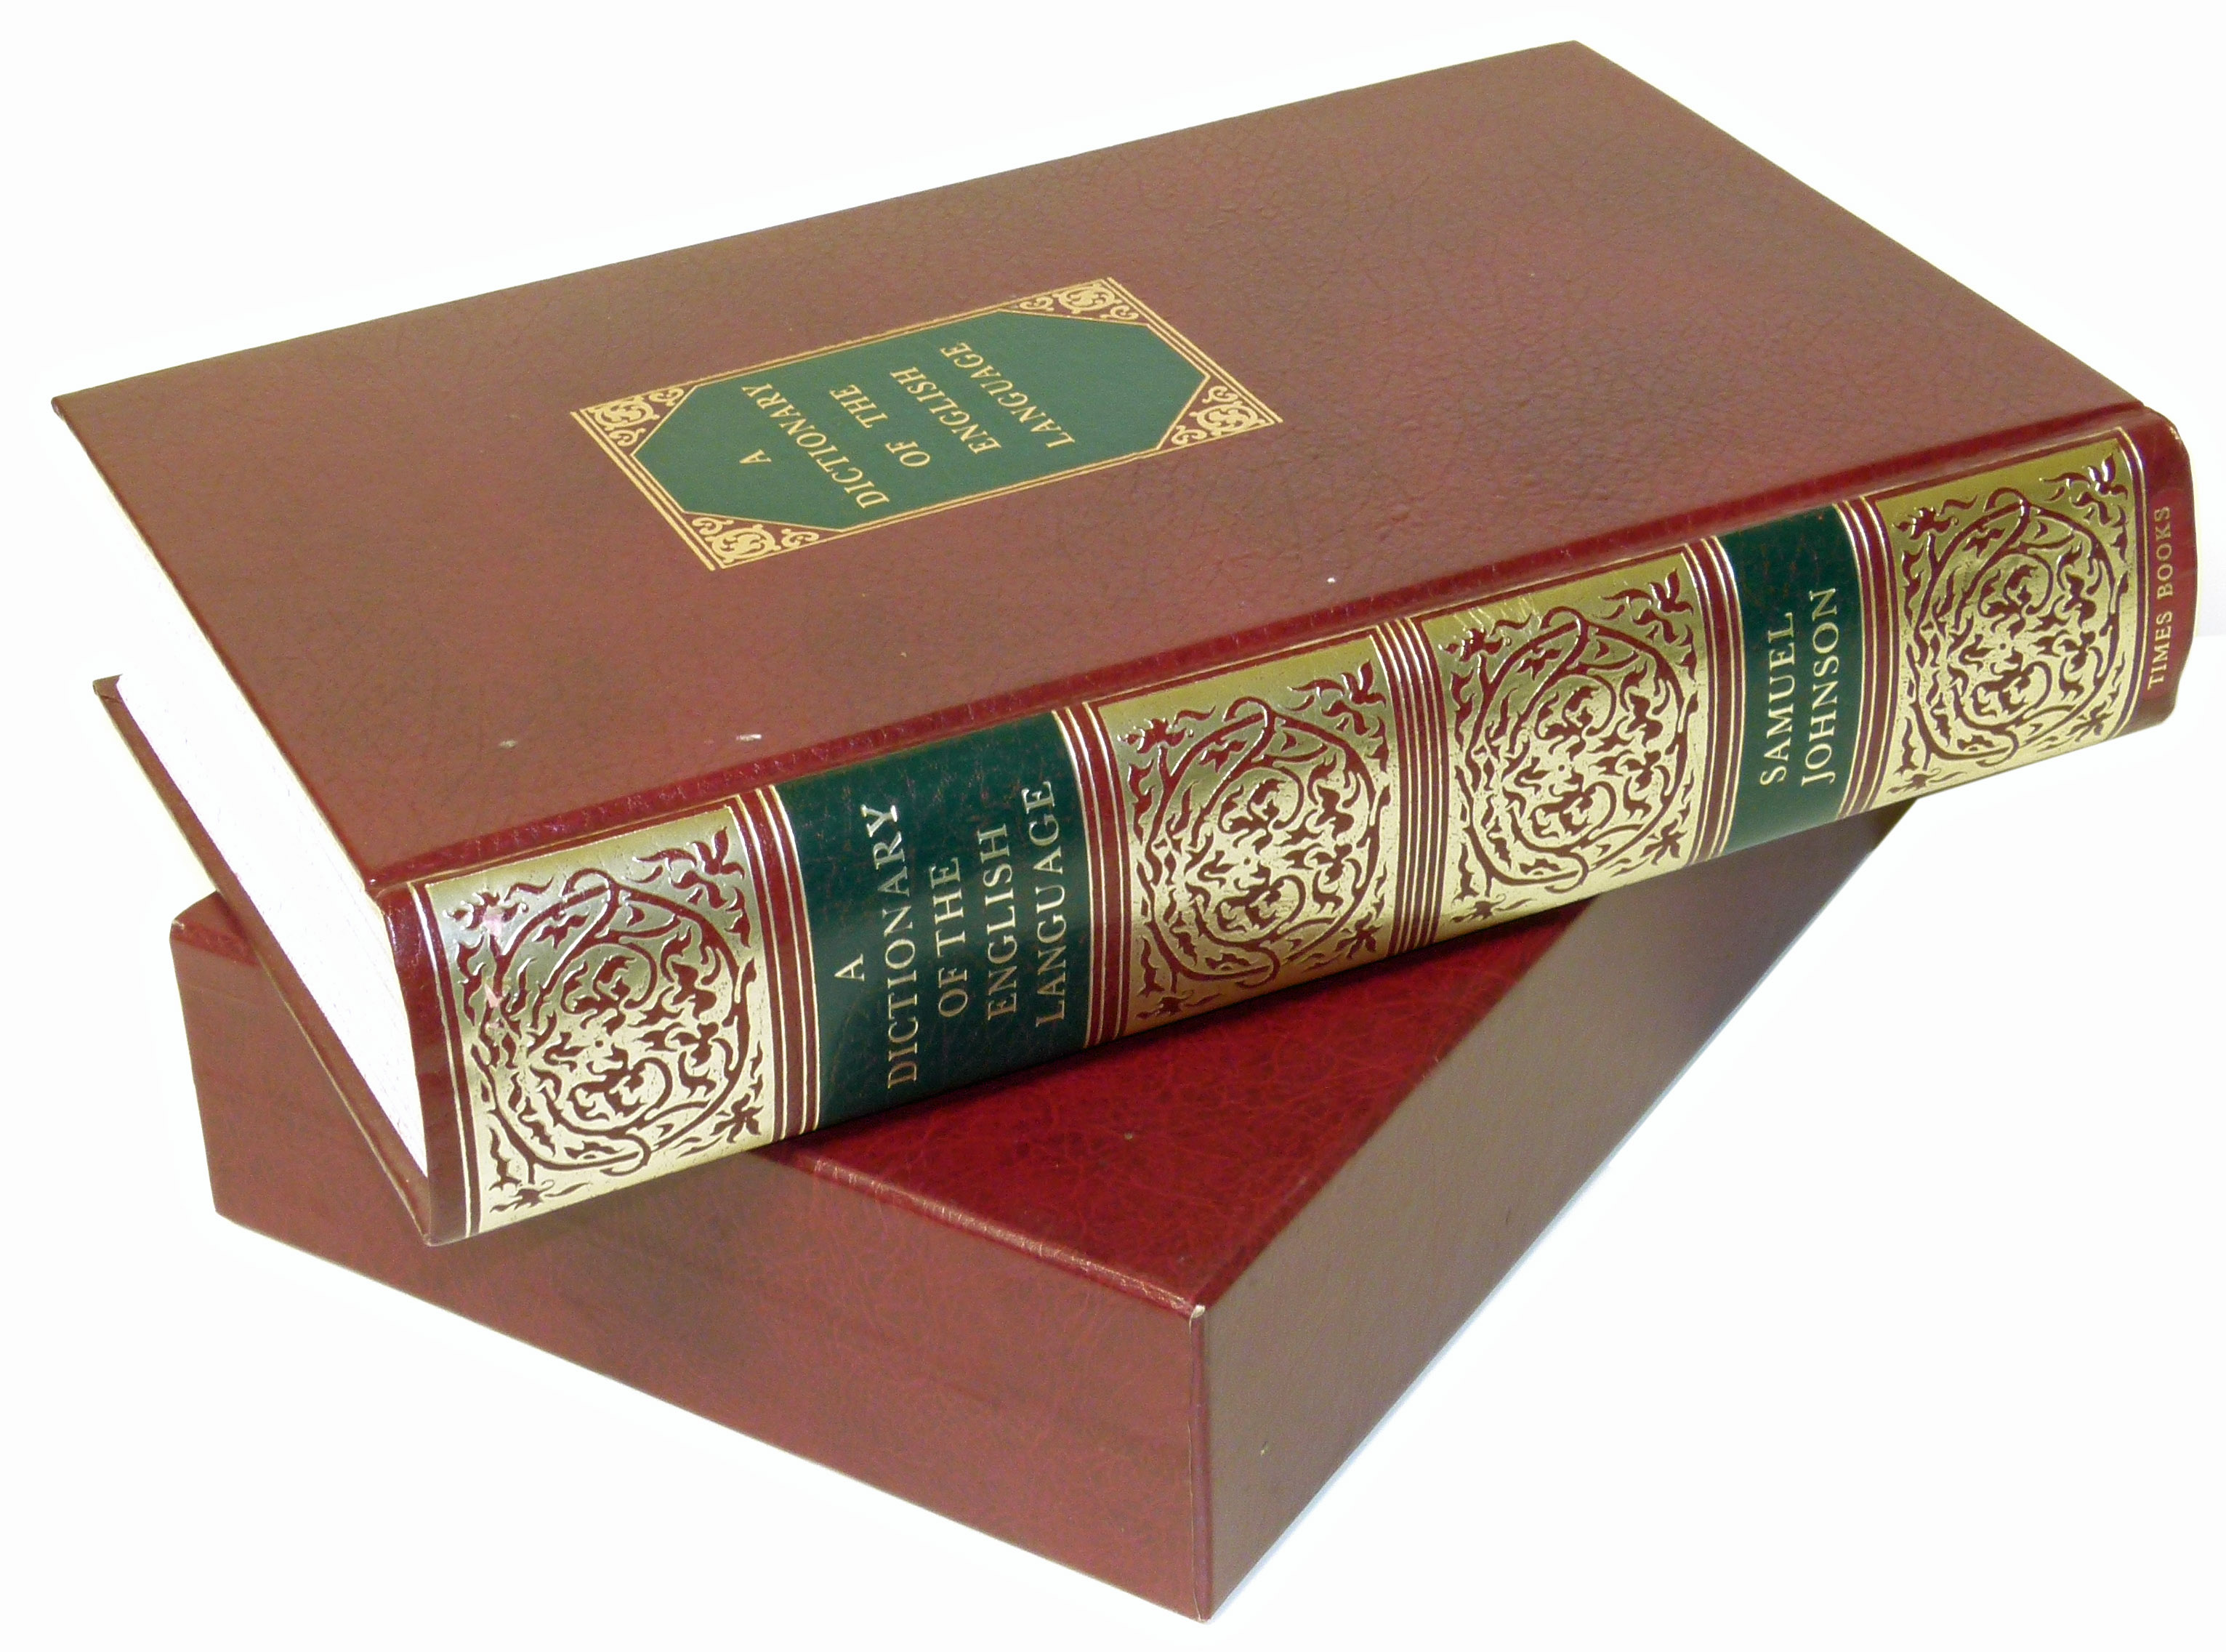 Lot 32 - Johnson, S., Dictionary of the English Language, Times Books 1979, attractive binding slip case.